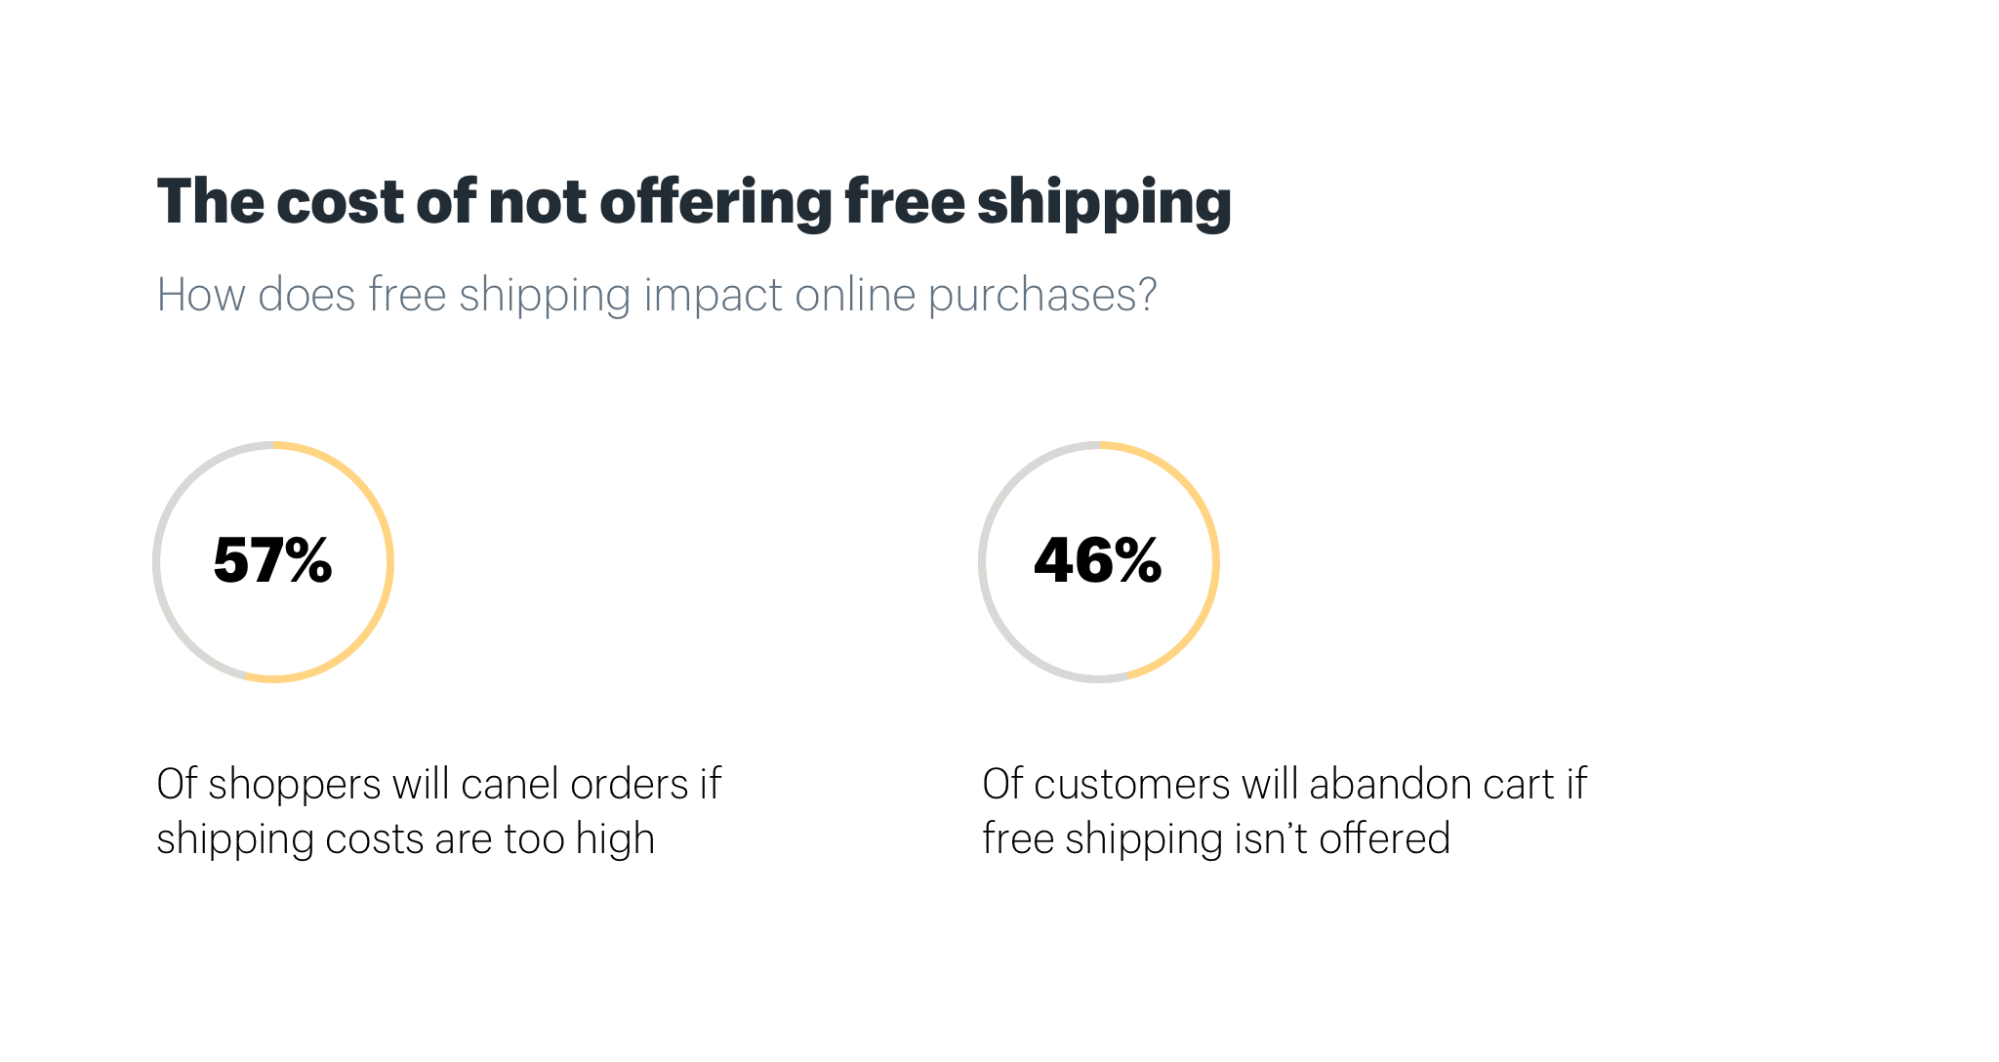 Ecommerce Fulfillment Free Shipping Two Day Delivery How To Guide Measurement Of Electrical Quantities With A Cro The Cost Not Offering In